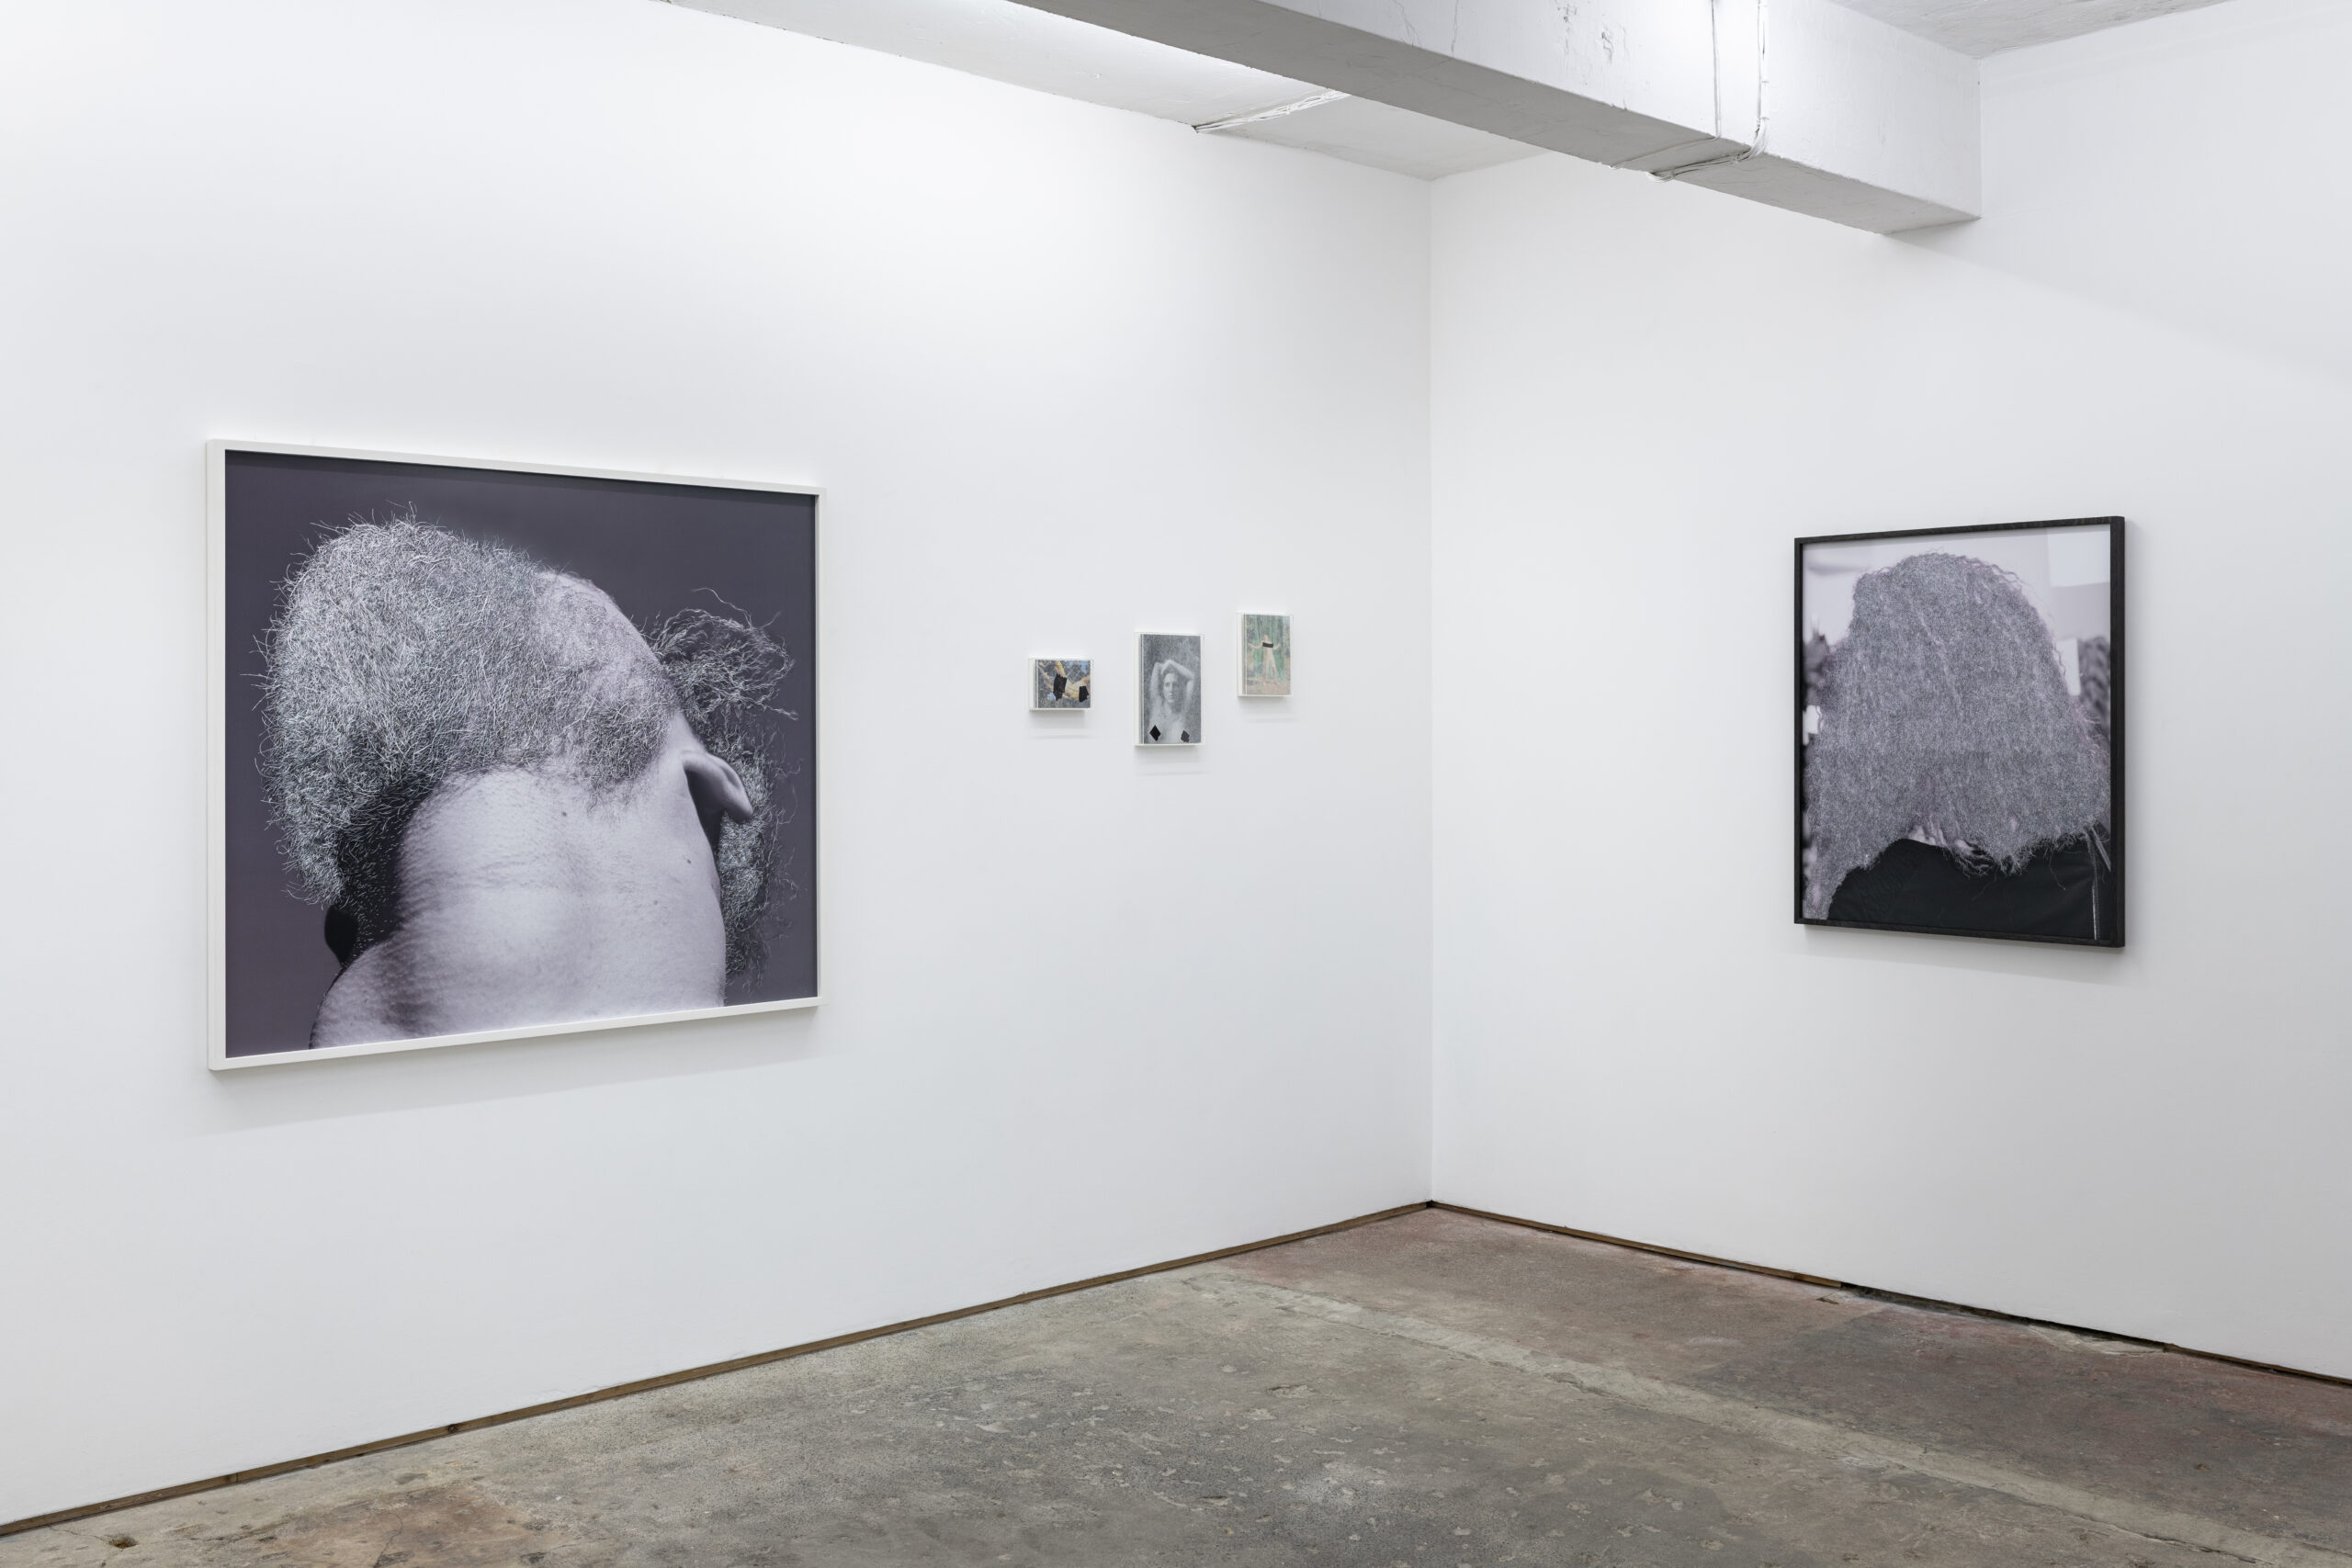 Rage rage against the dying of the light at Lungley Gallery 2020